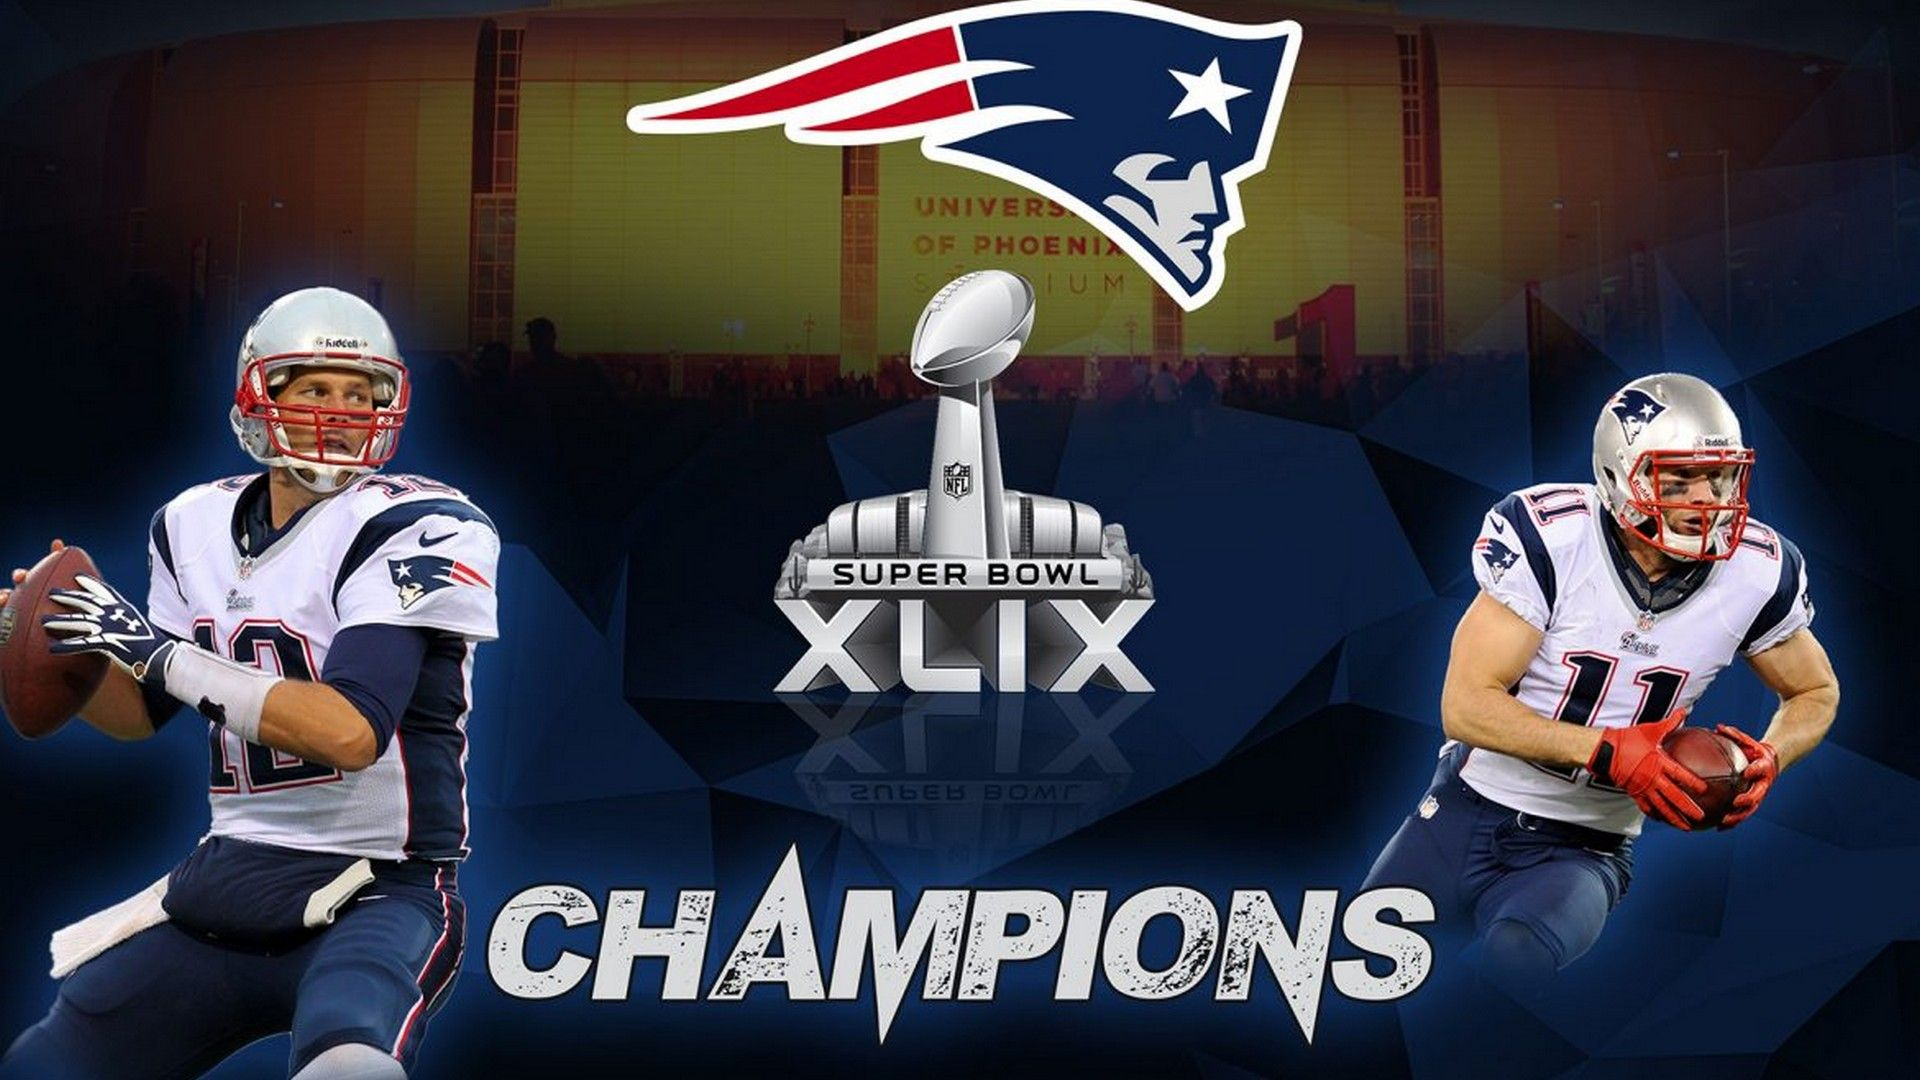 Wallpapers HD Patriots New england patriots Nfl new england 1920x1080